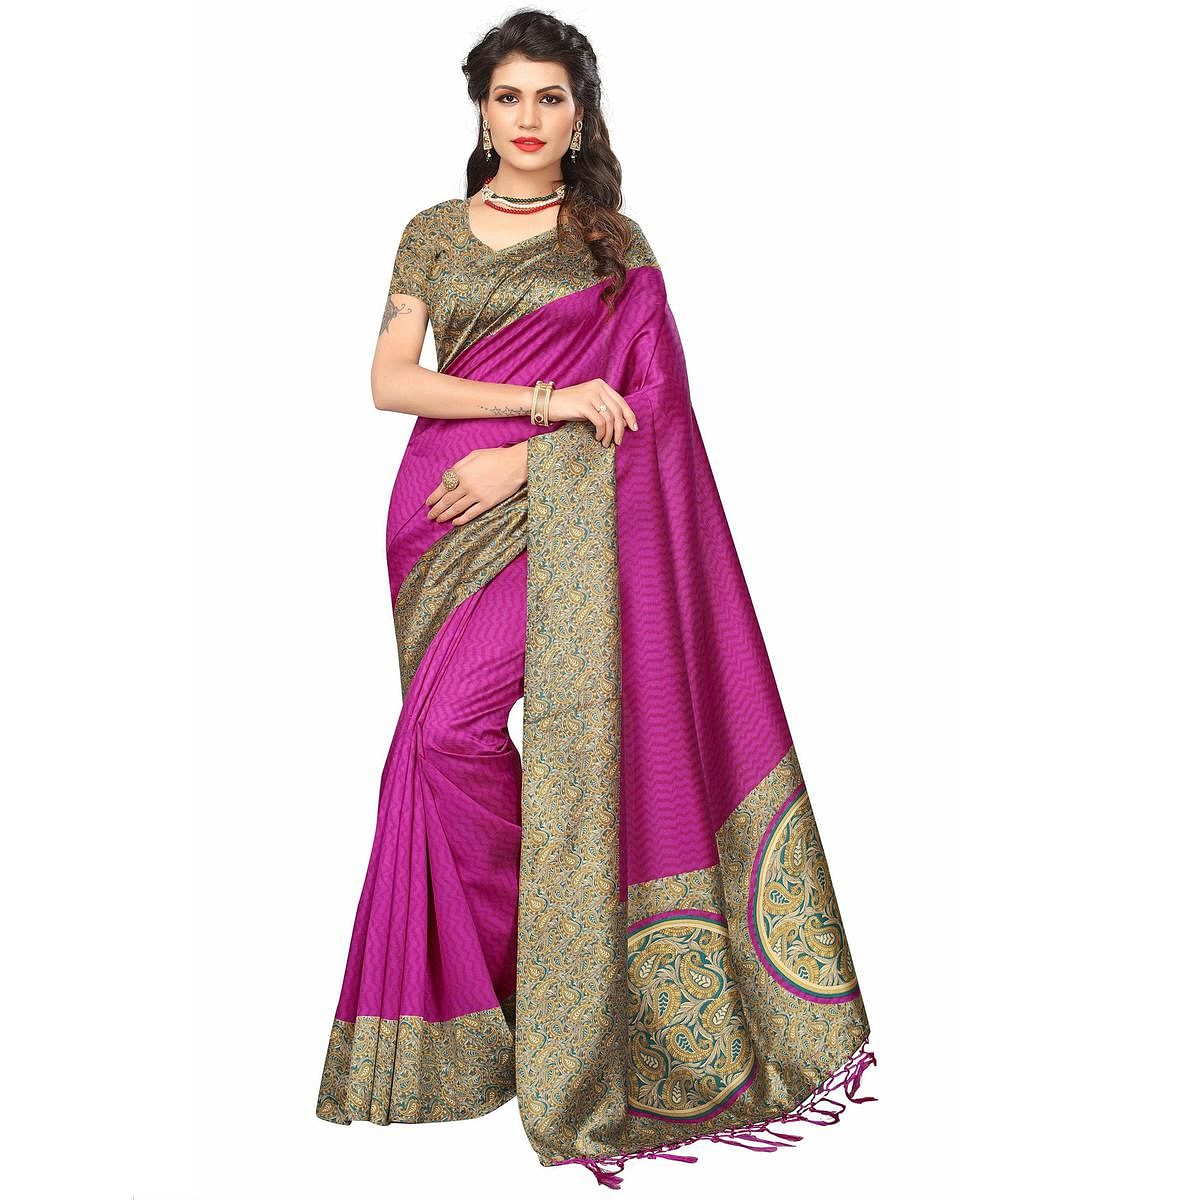 Appealing Rani Pink Colored Festive Wear Printed Mysore Art Silk Saree